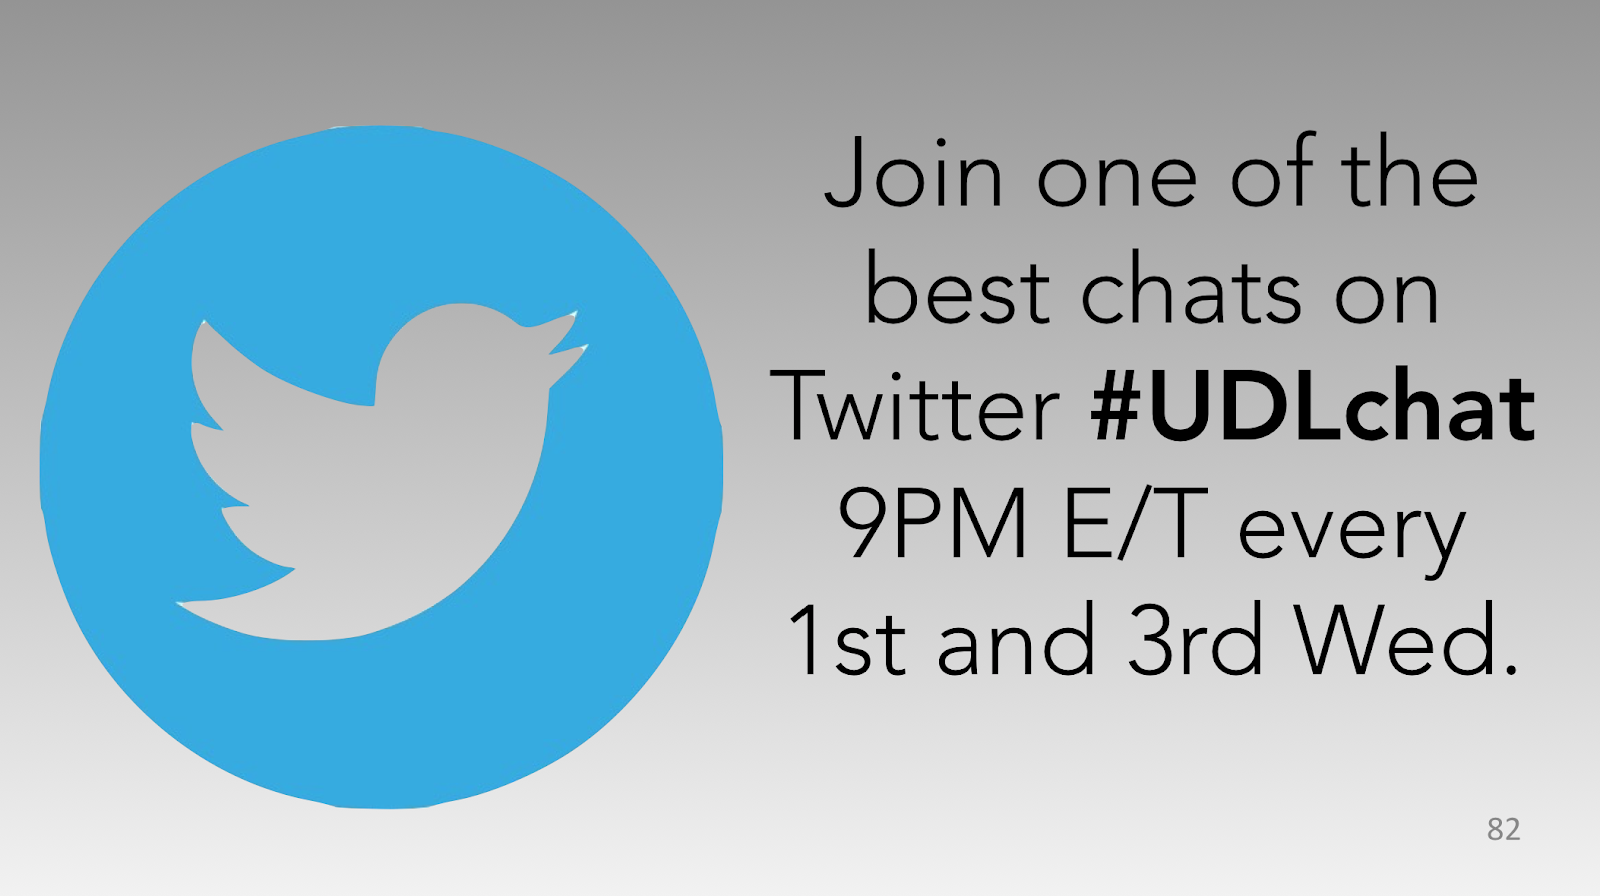 Twitter chat #UDLchat 9 PM E/T every 1st & 3rd Wednesday